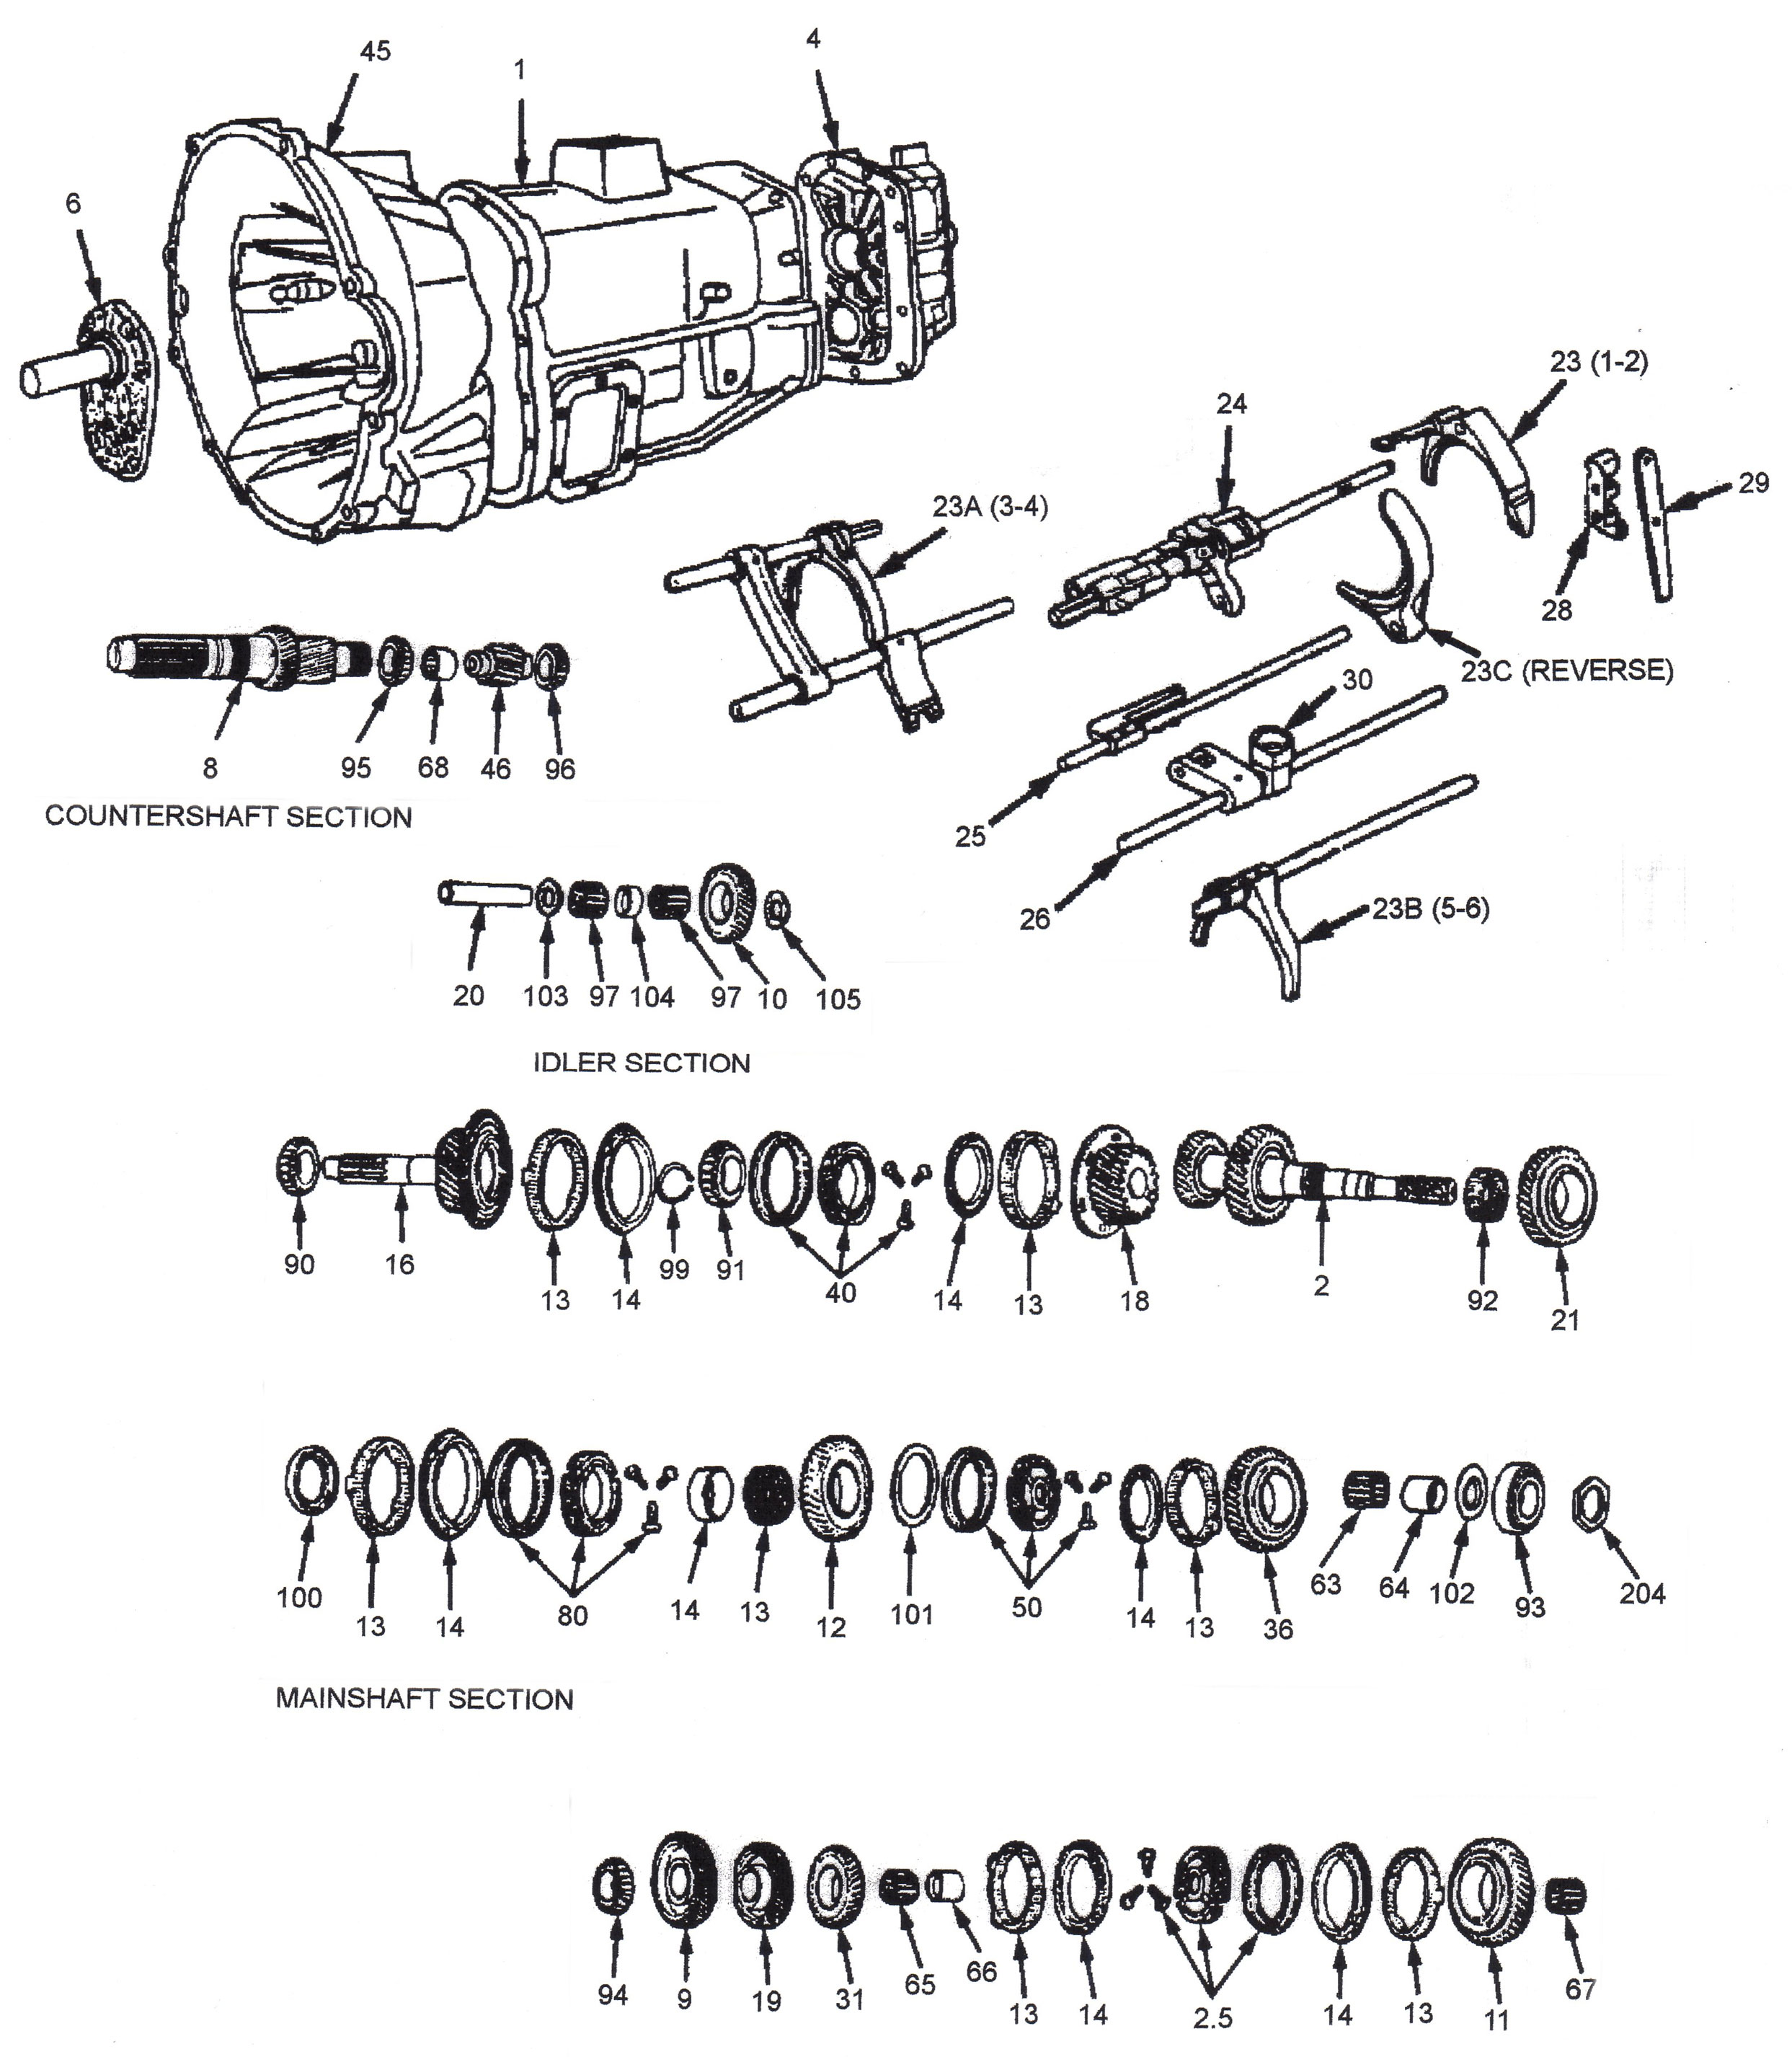 2001 Tundra Trans Wiring Diagram : 32 Wiring Diagram